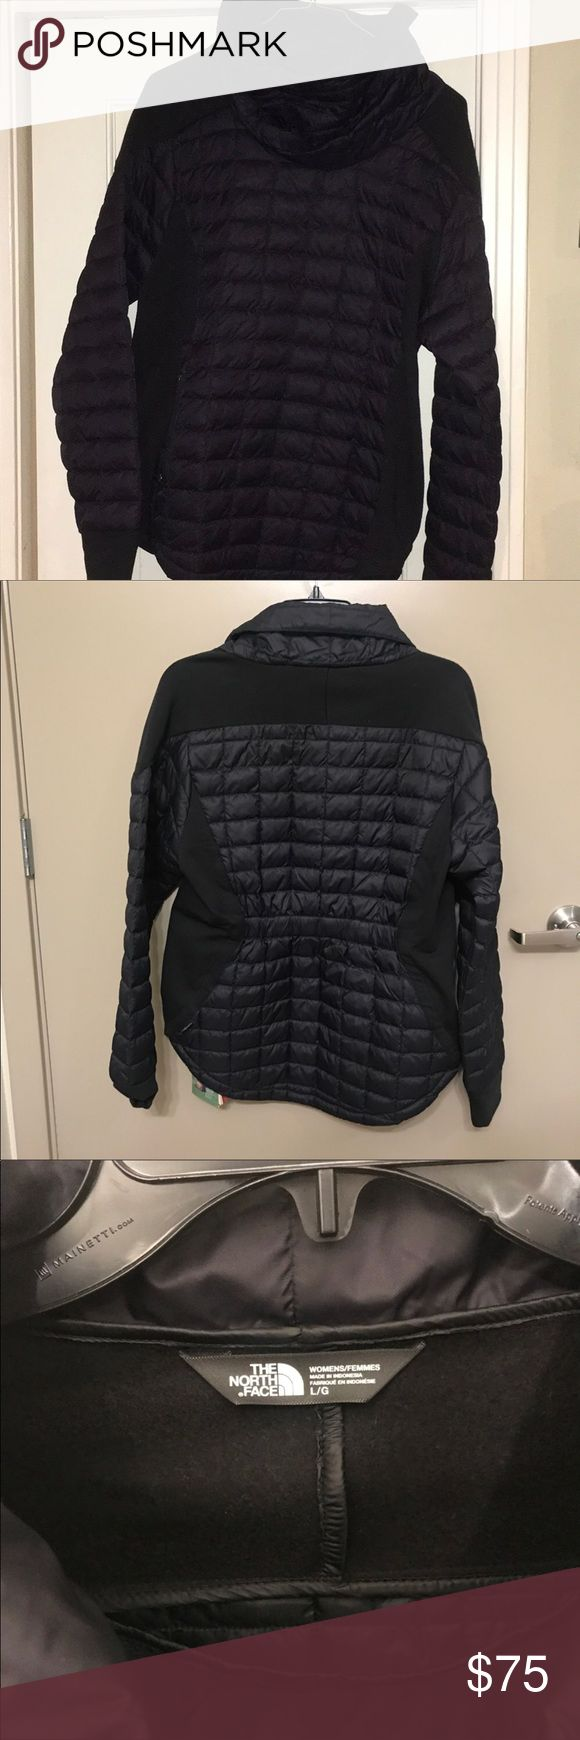 NWOT NorthFace Thermaball Ladies jacket Just bought.  Took off tags and didn't fit,   Really versatile and cute!  Great quality and details! North Face Jackets & Coats Puffers